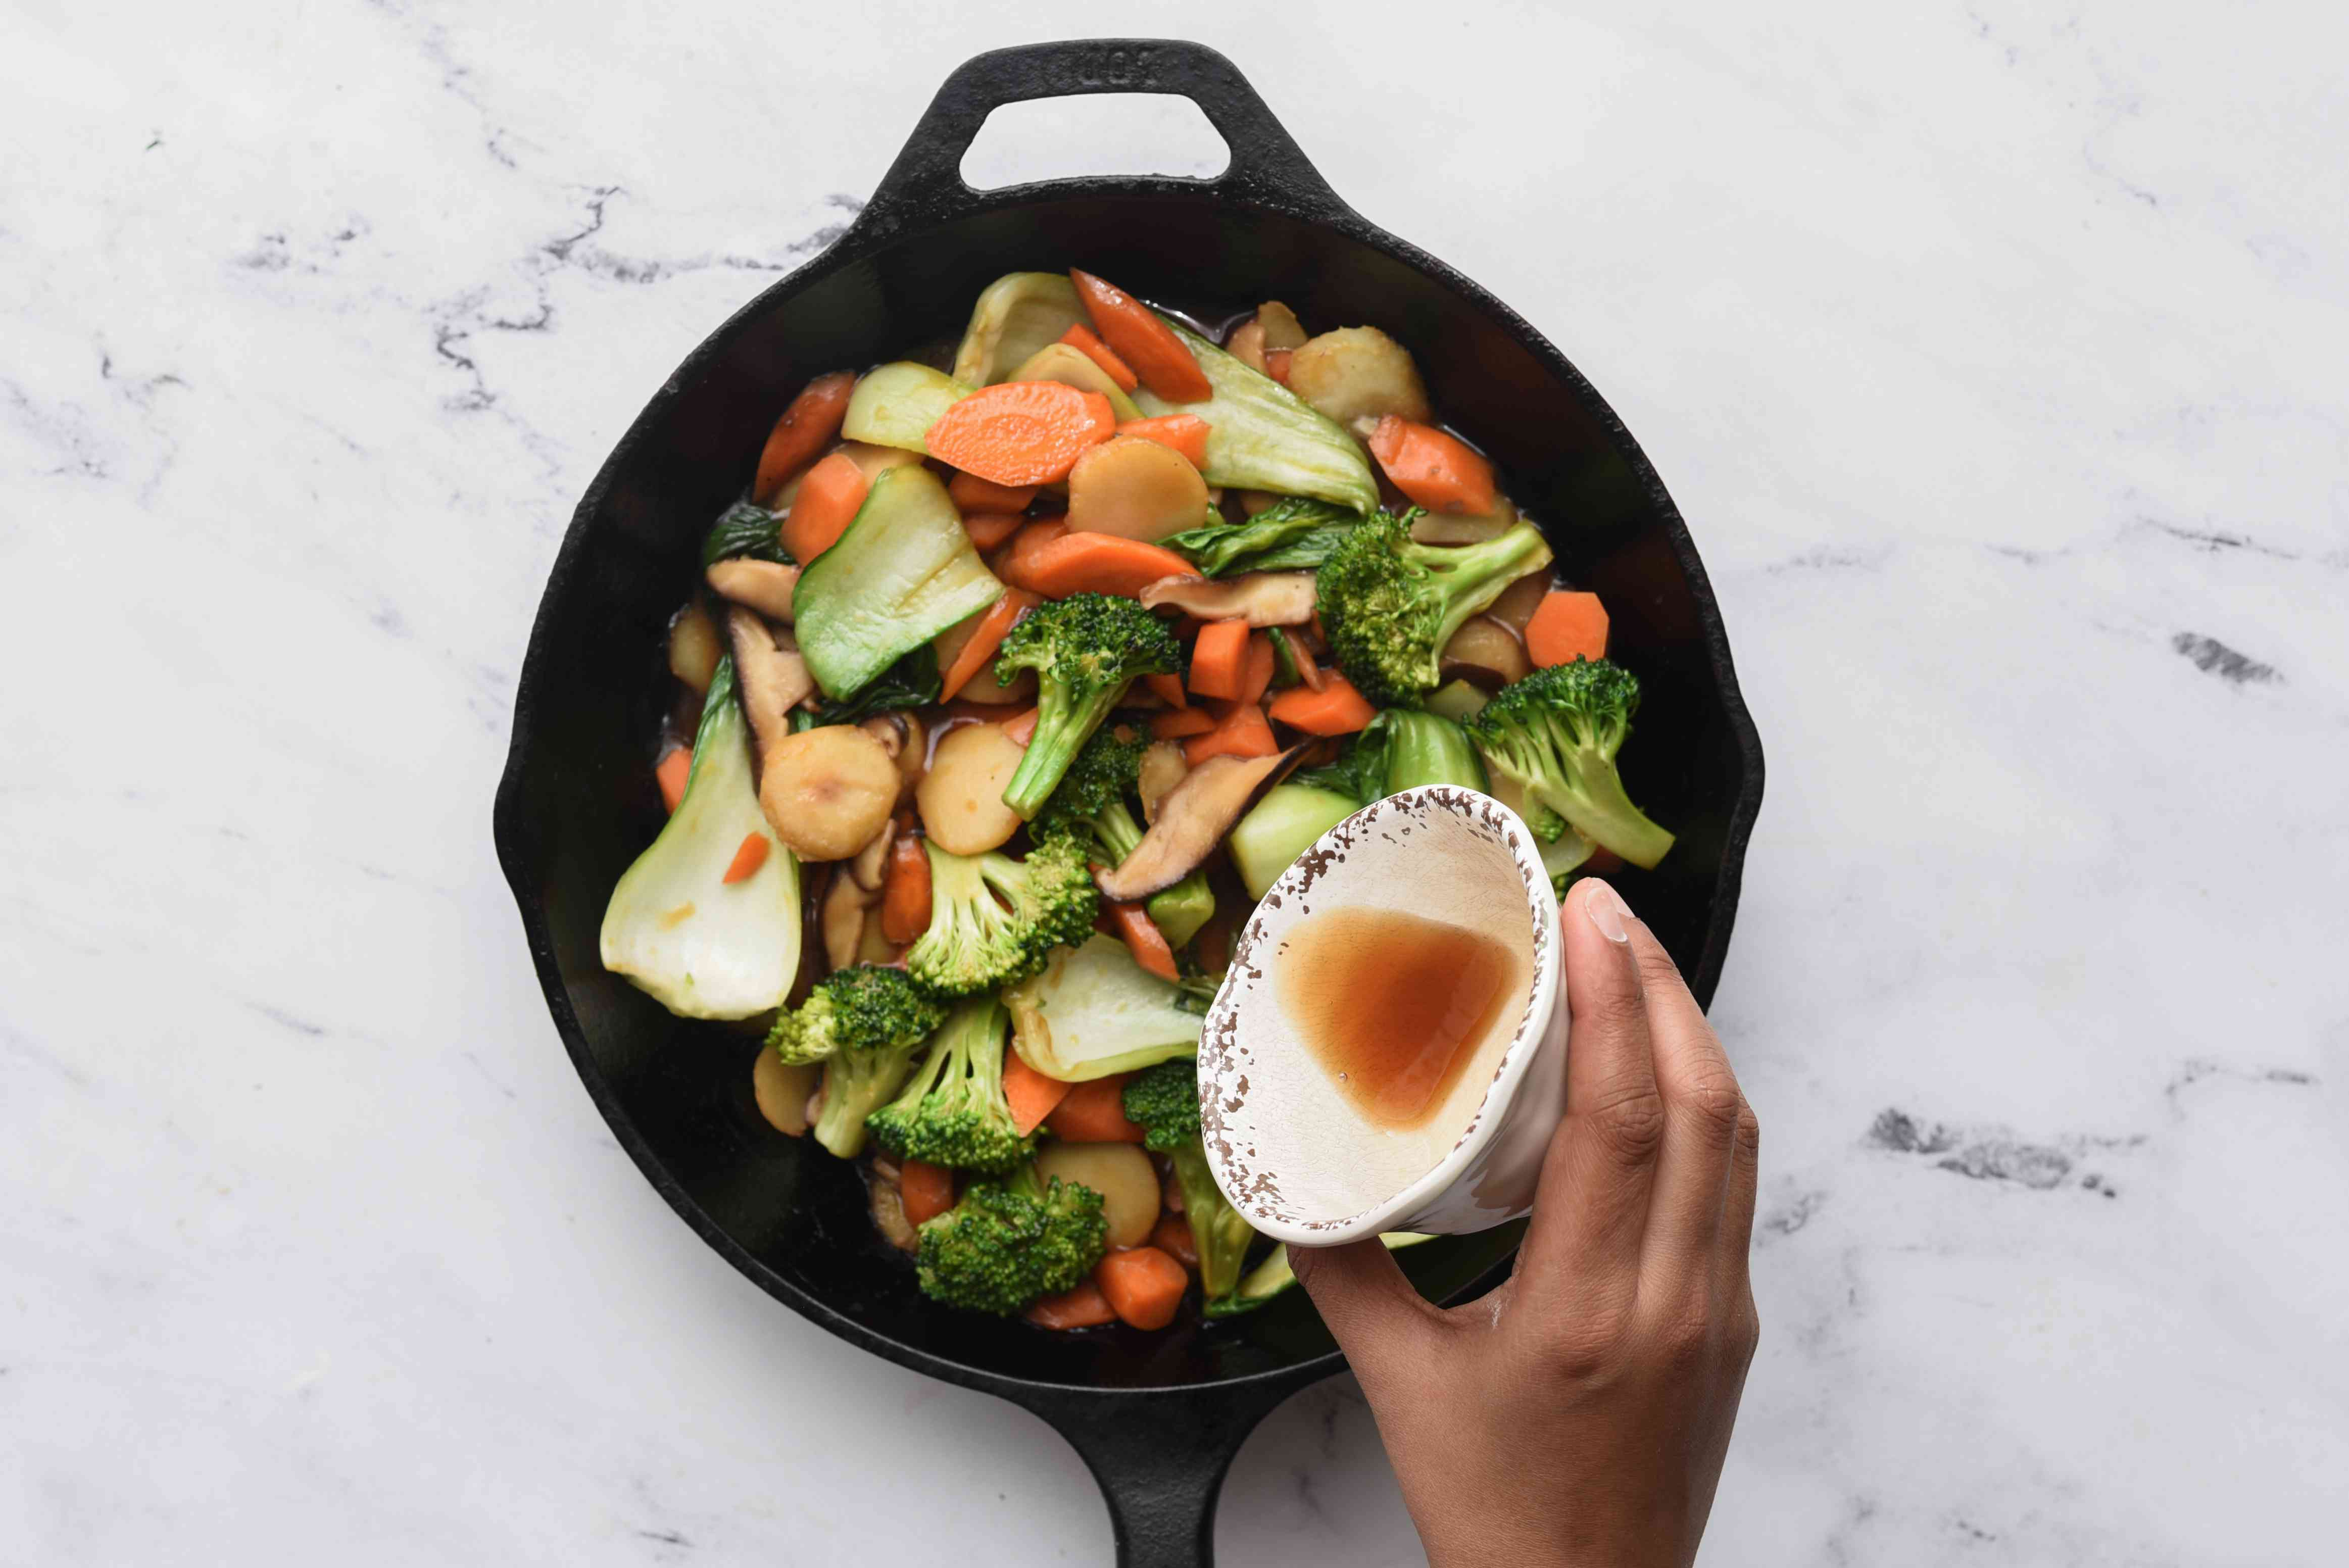 add sesame oil to the vegetables in the pan